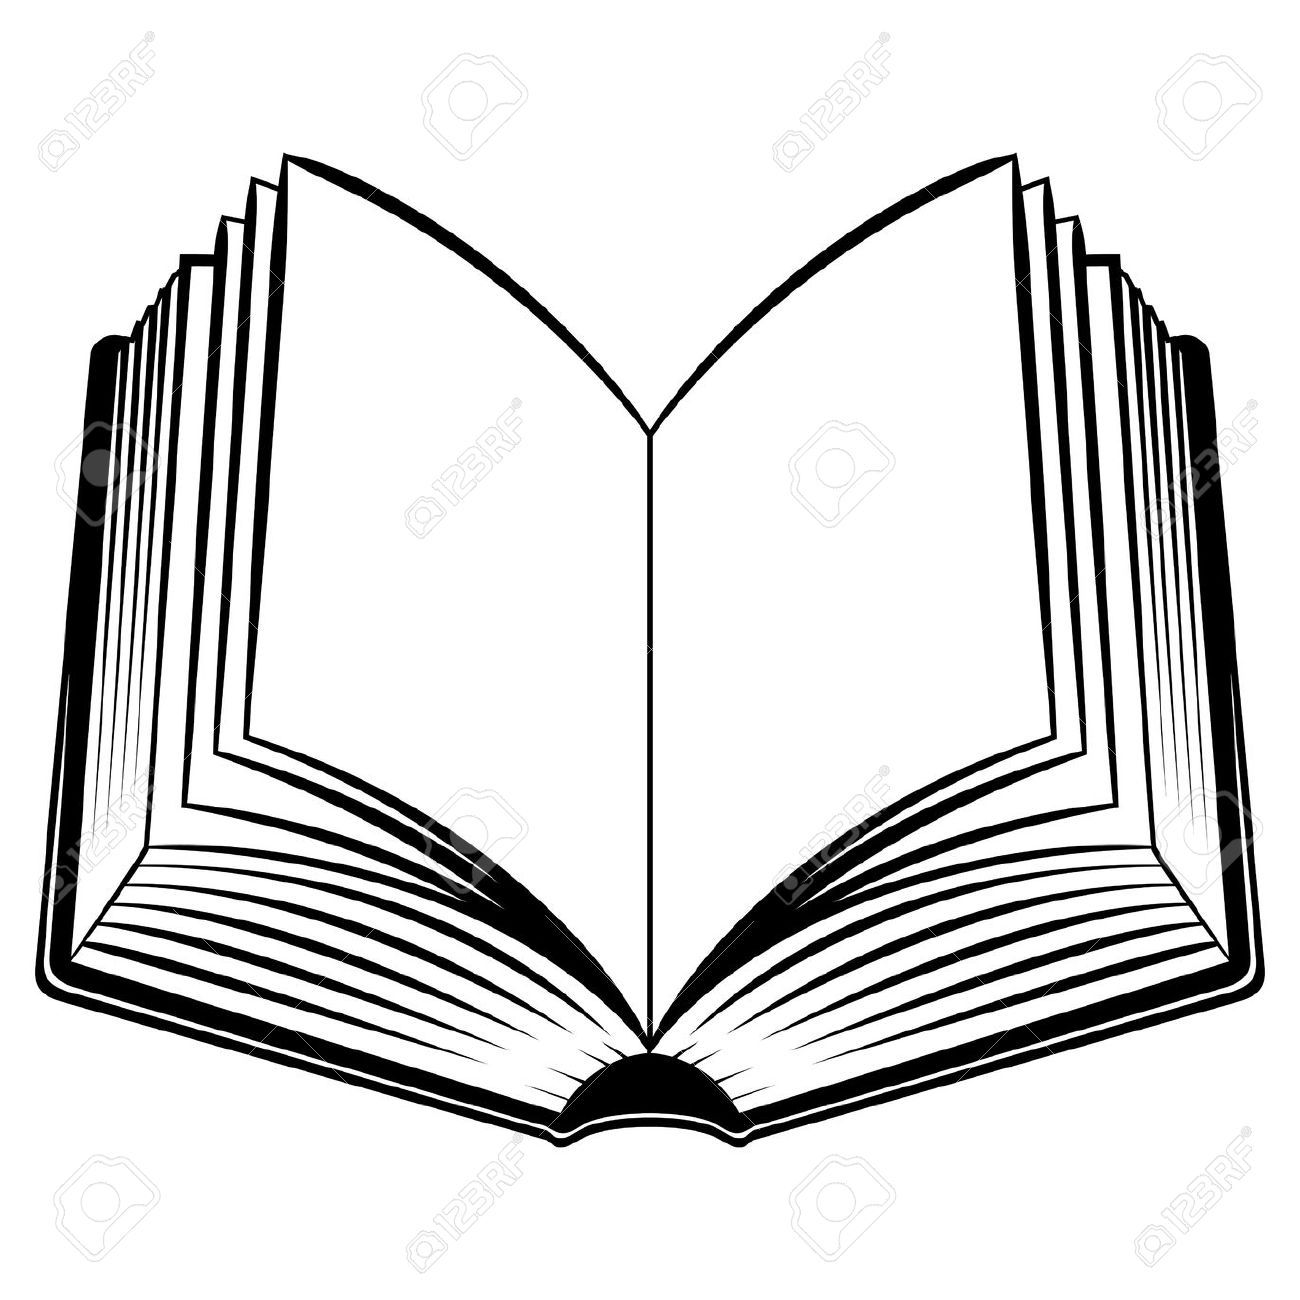 Open Book Images Stock Pictures Royalty Free Open Book